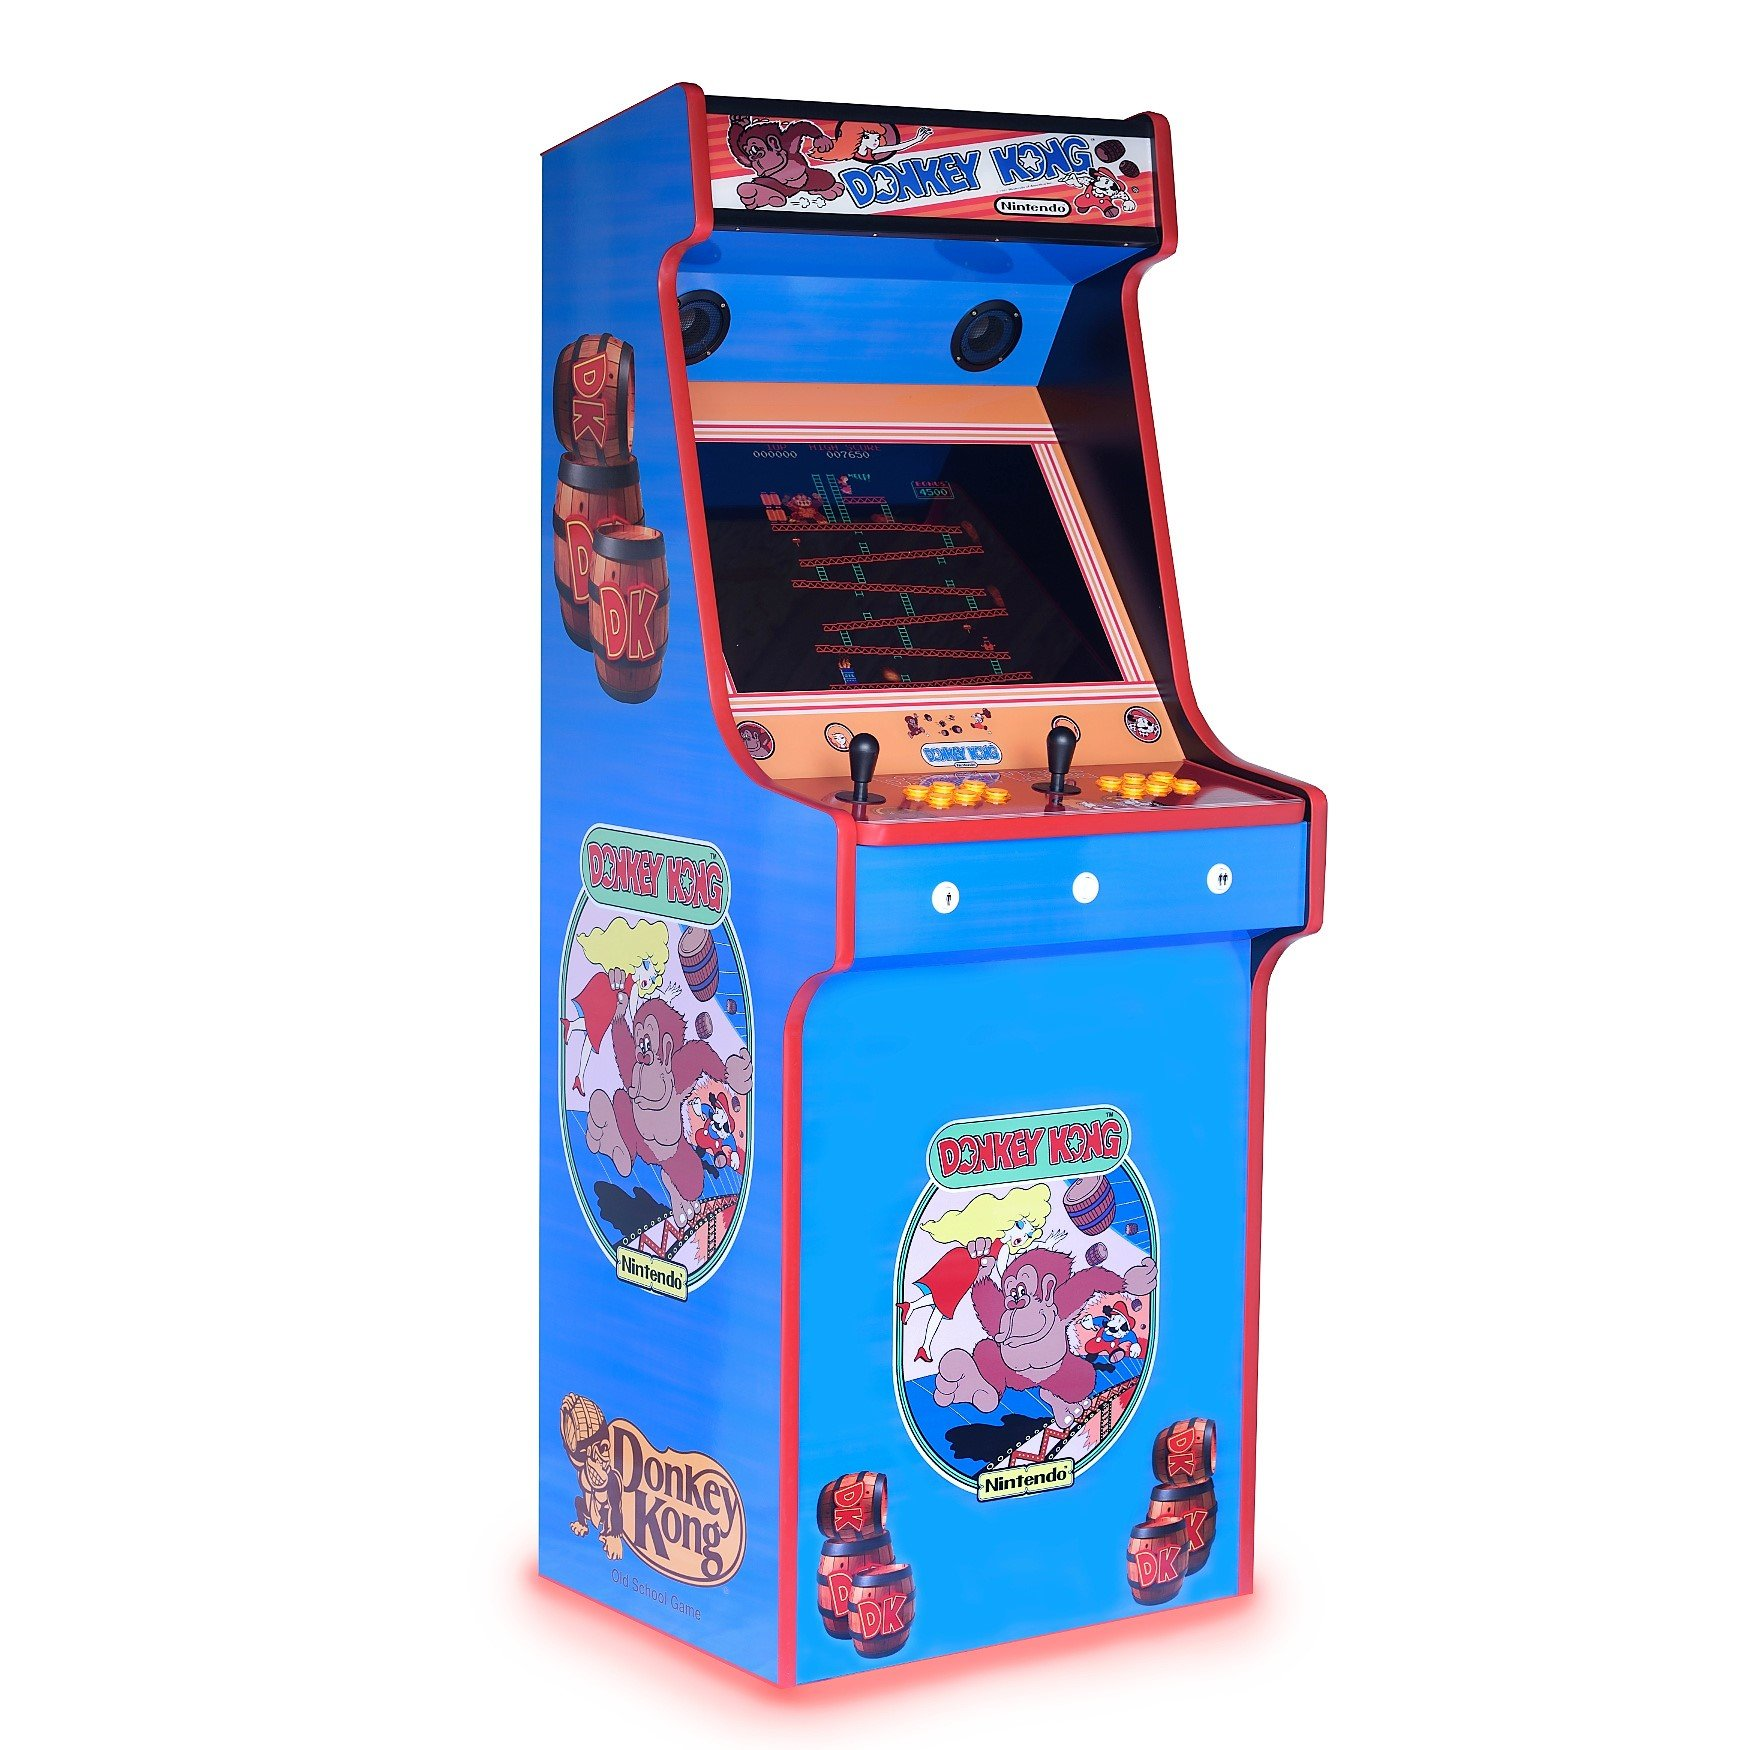 Retro Upright Arcade Machine Donkey Kong Art 815 Games